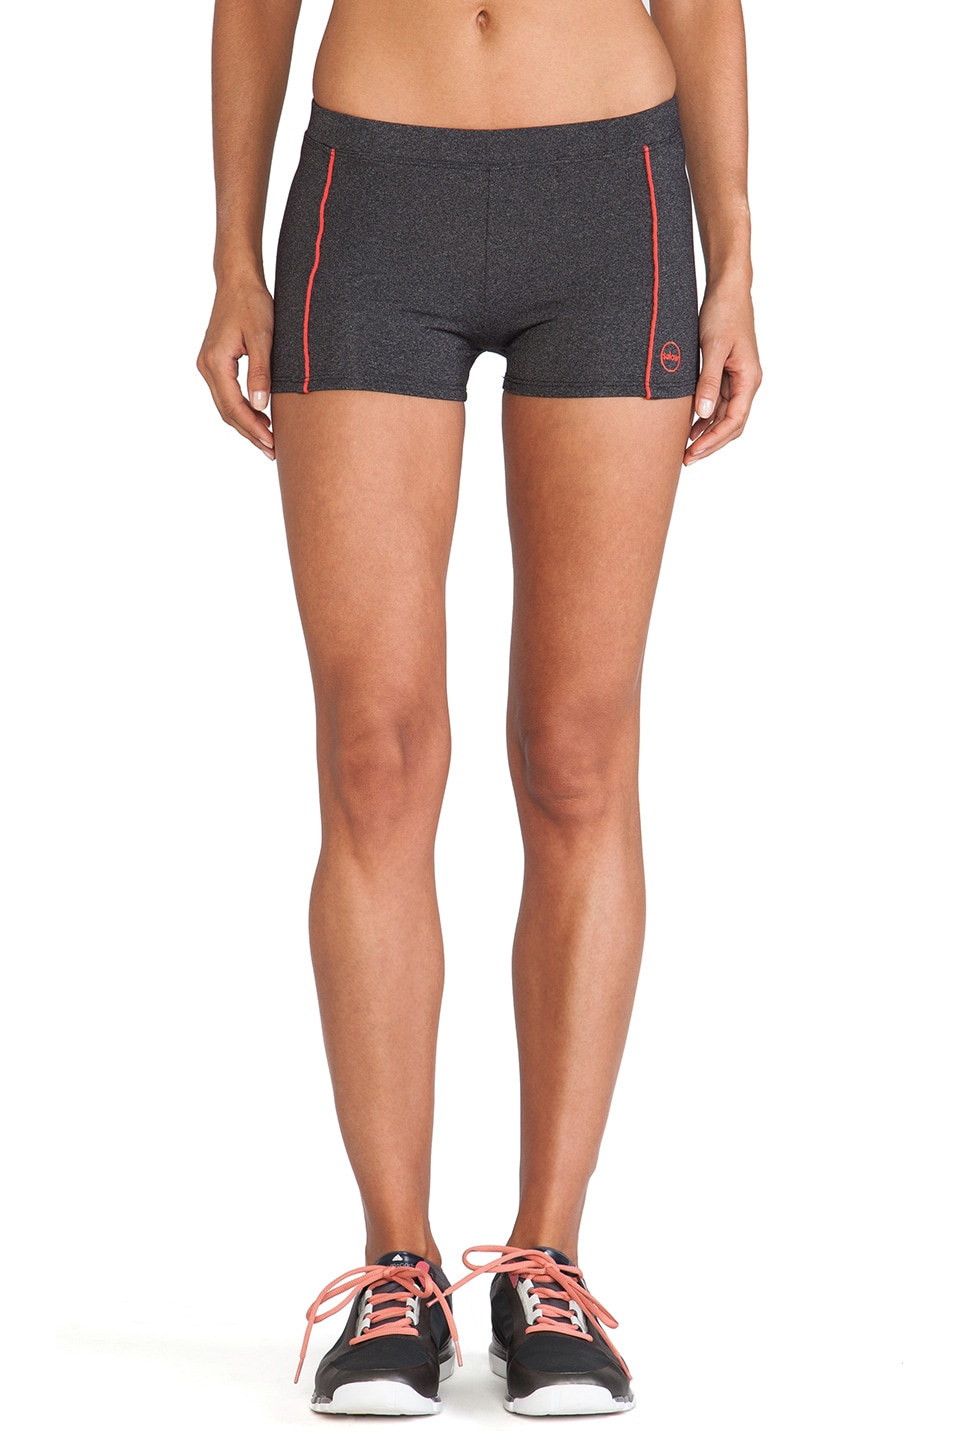 SOLOW Booty Short in Heather Charcoal & Samba